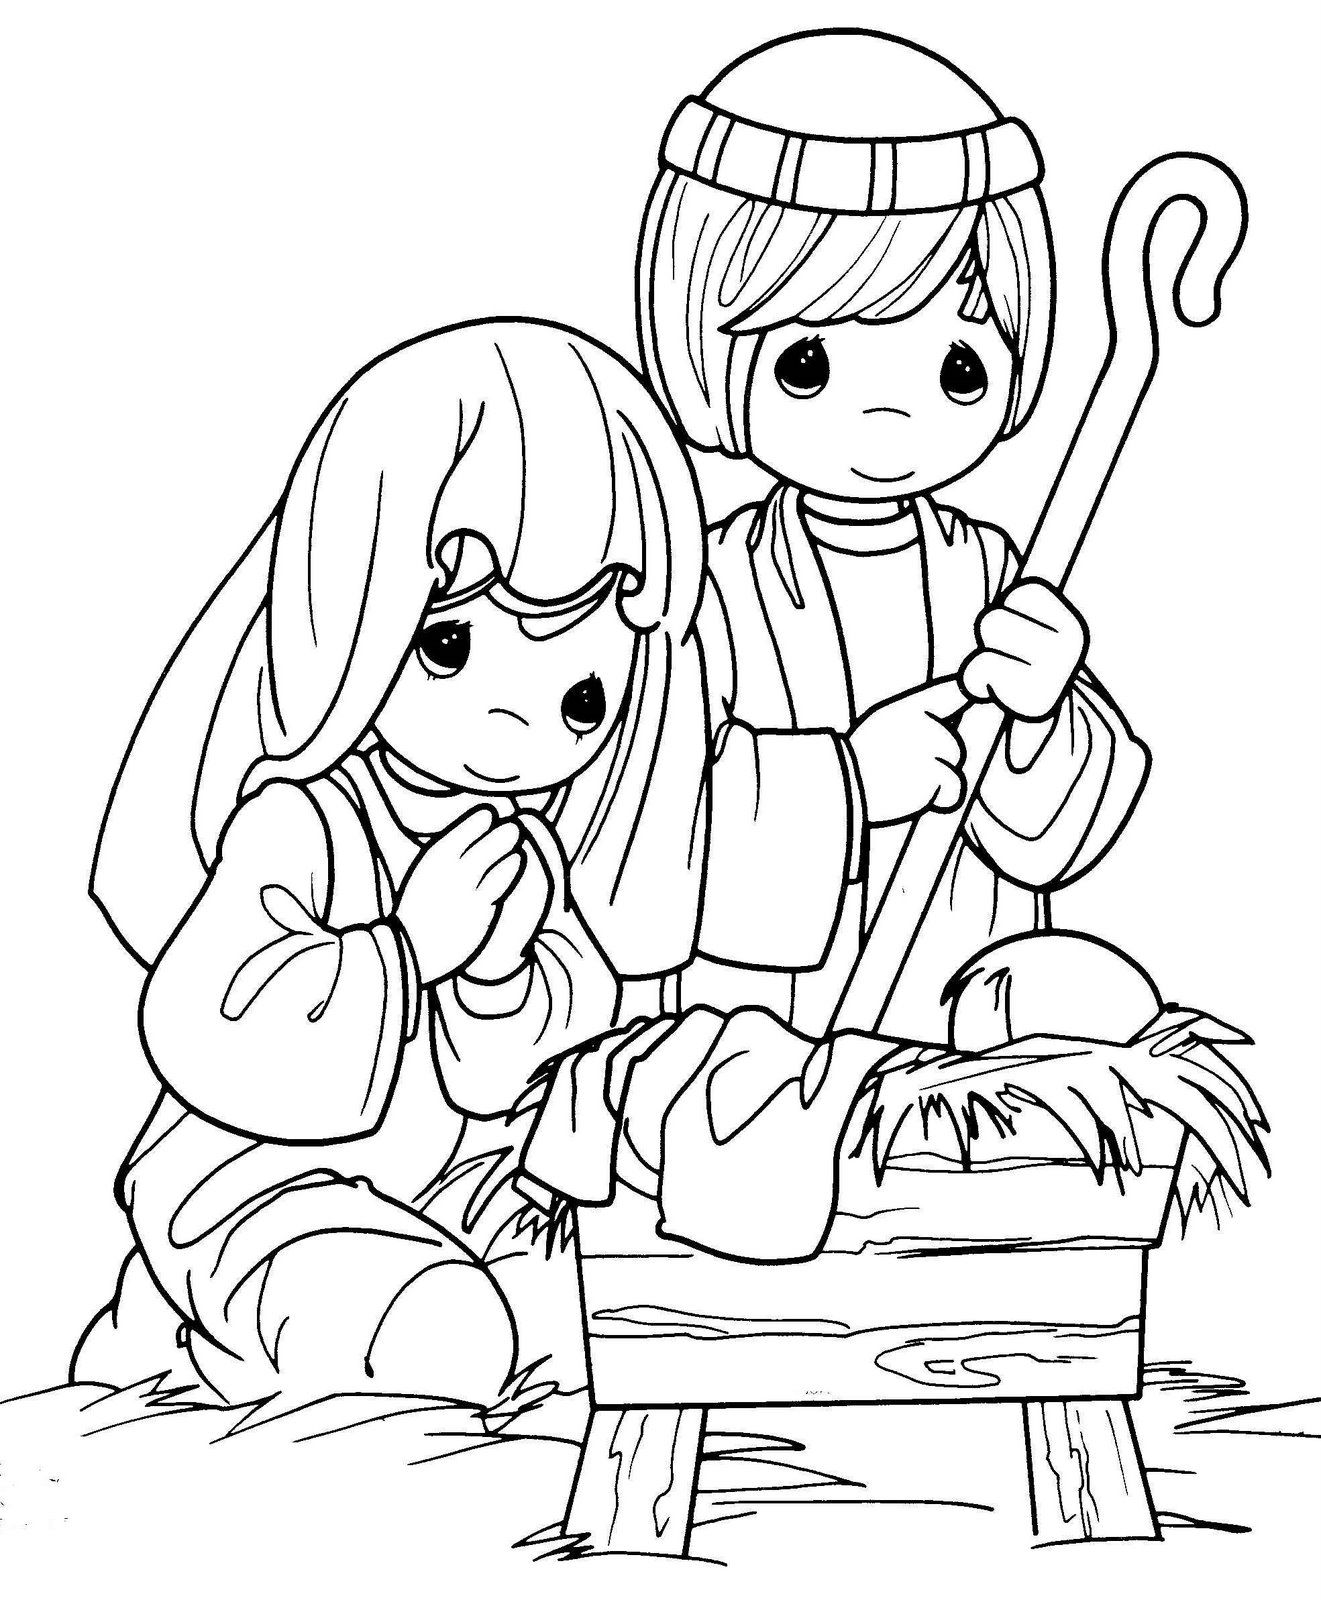 manger coloring pages free printable nativity coloring pages for kids best manger coloring pages